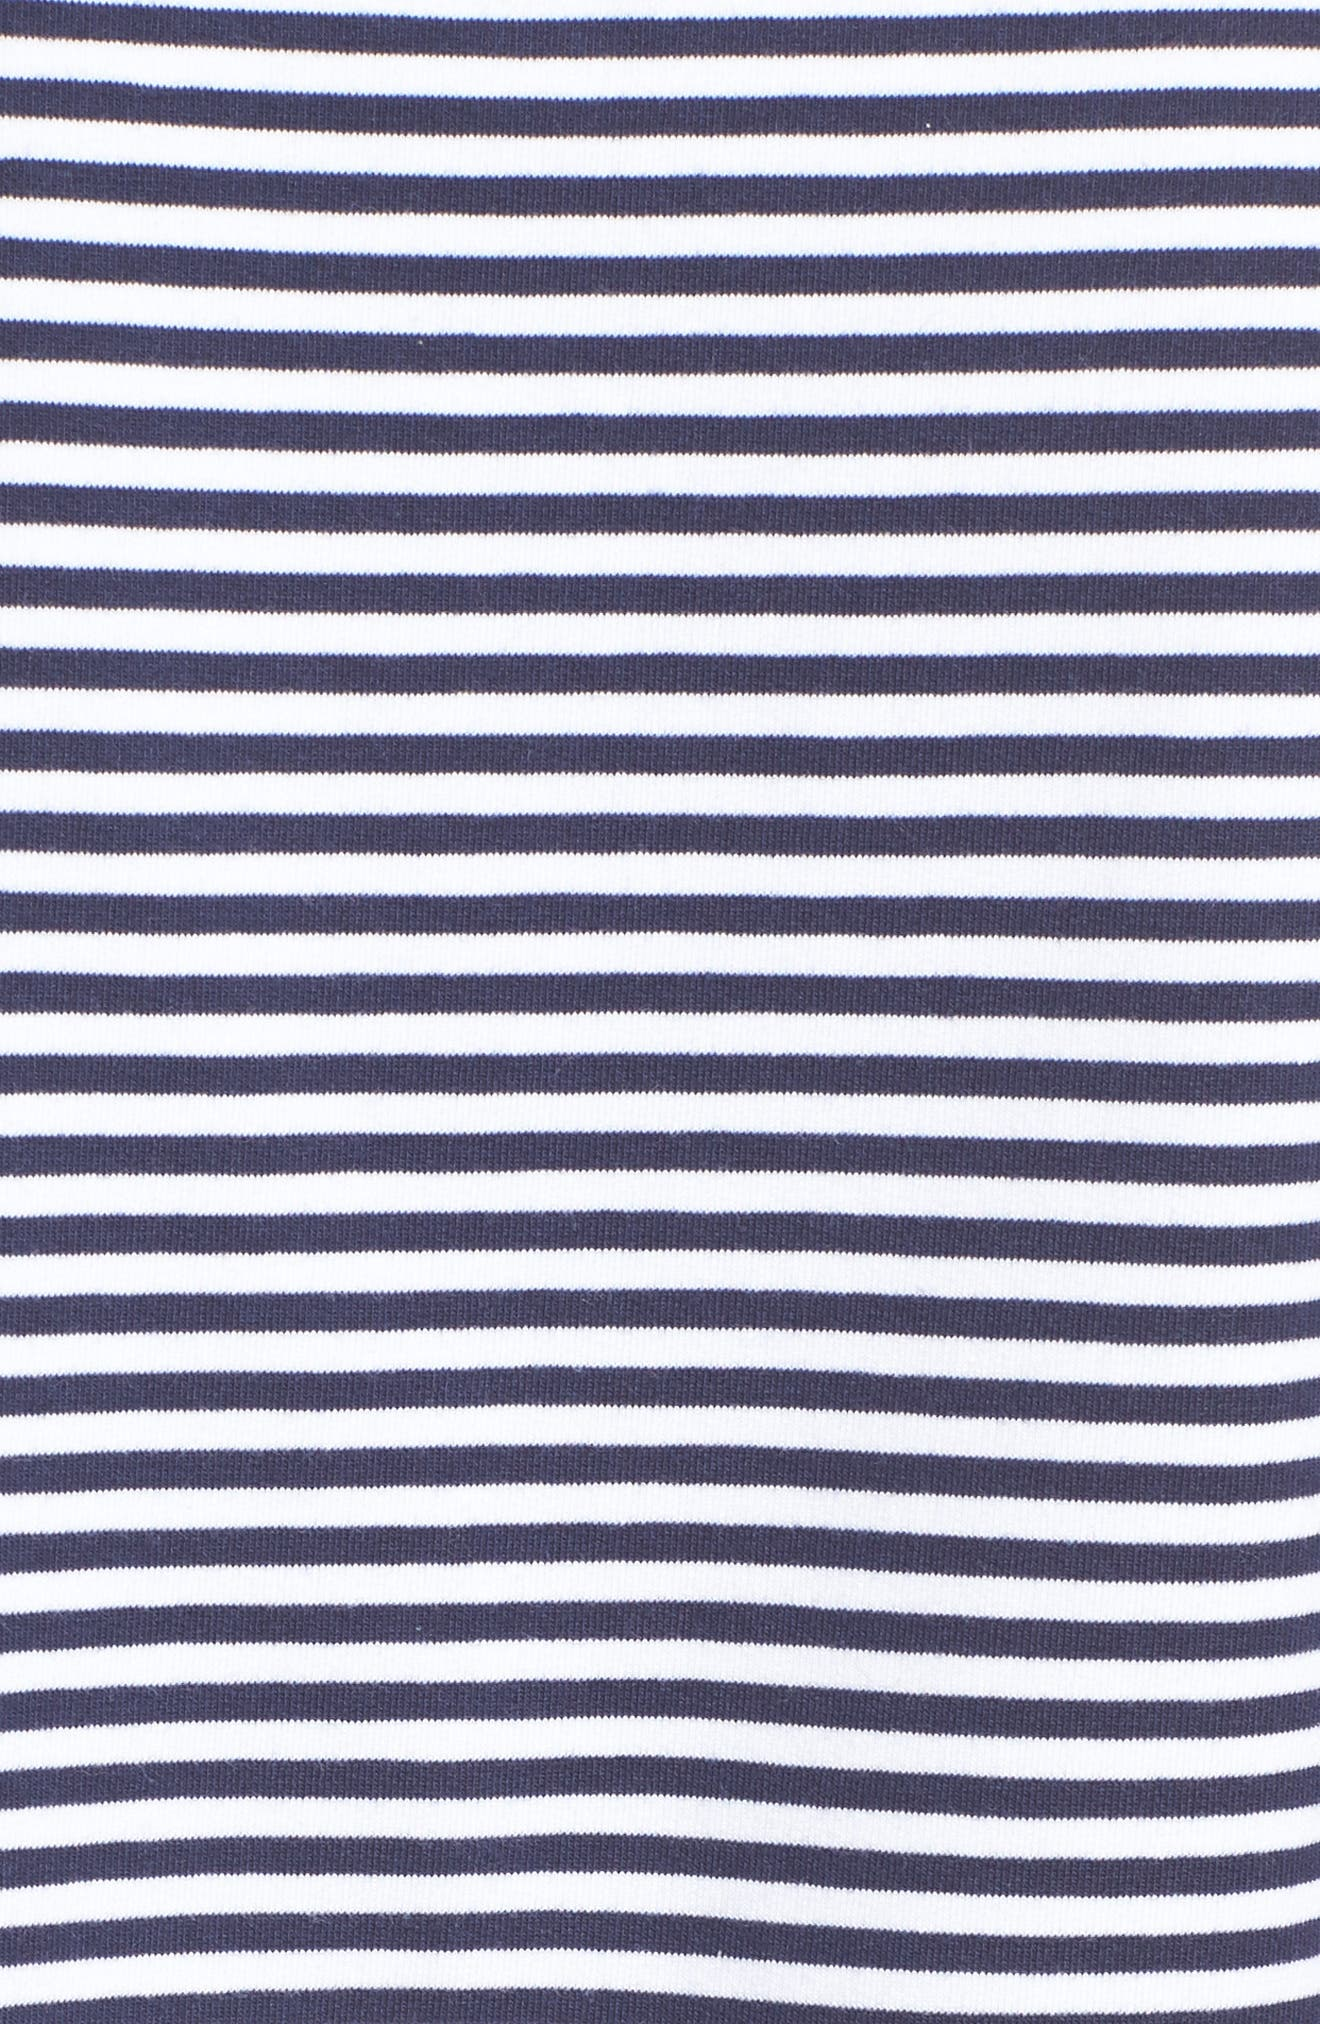 Ruched Front Tunic Sweatshirt,                             Alternate thumbnail 5, color,                             Navy- White Stripe